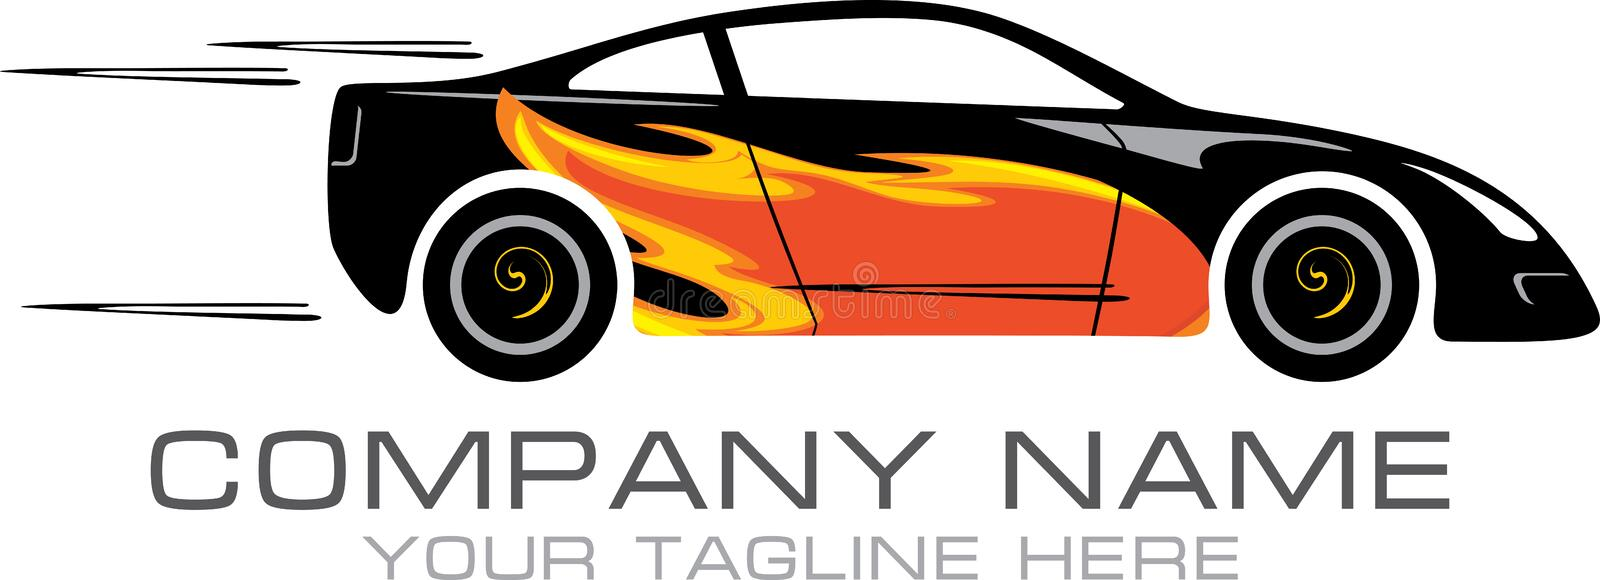 Car tuning. Sign for logo royalty free stock image